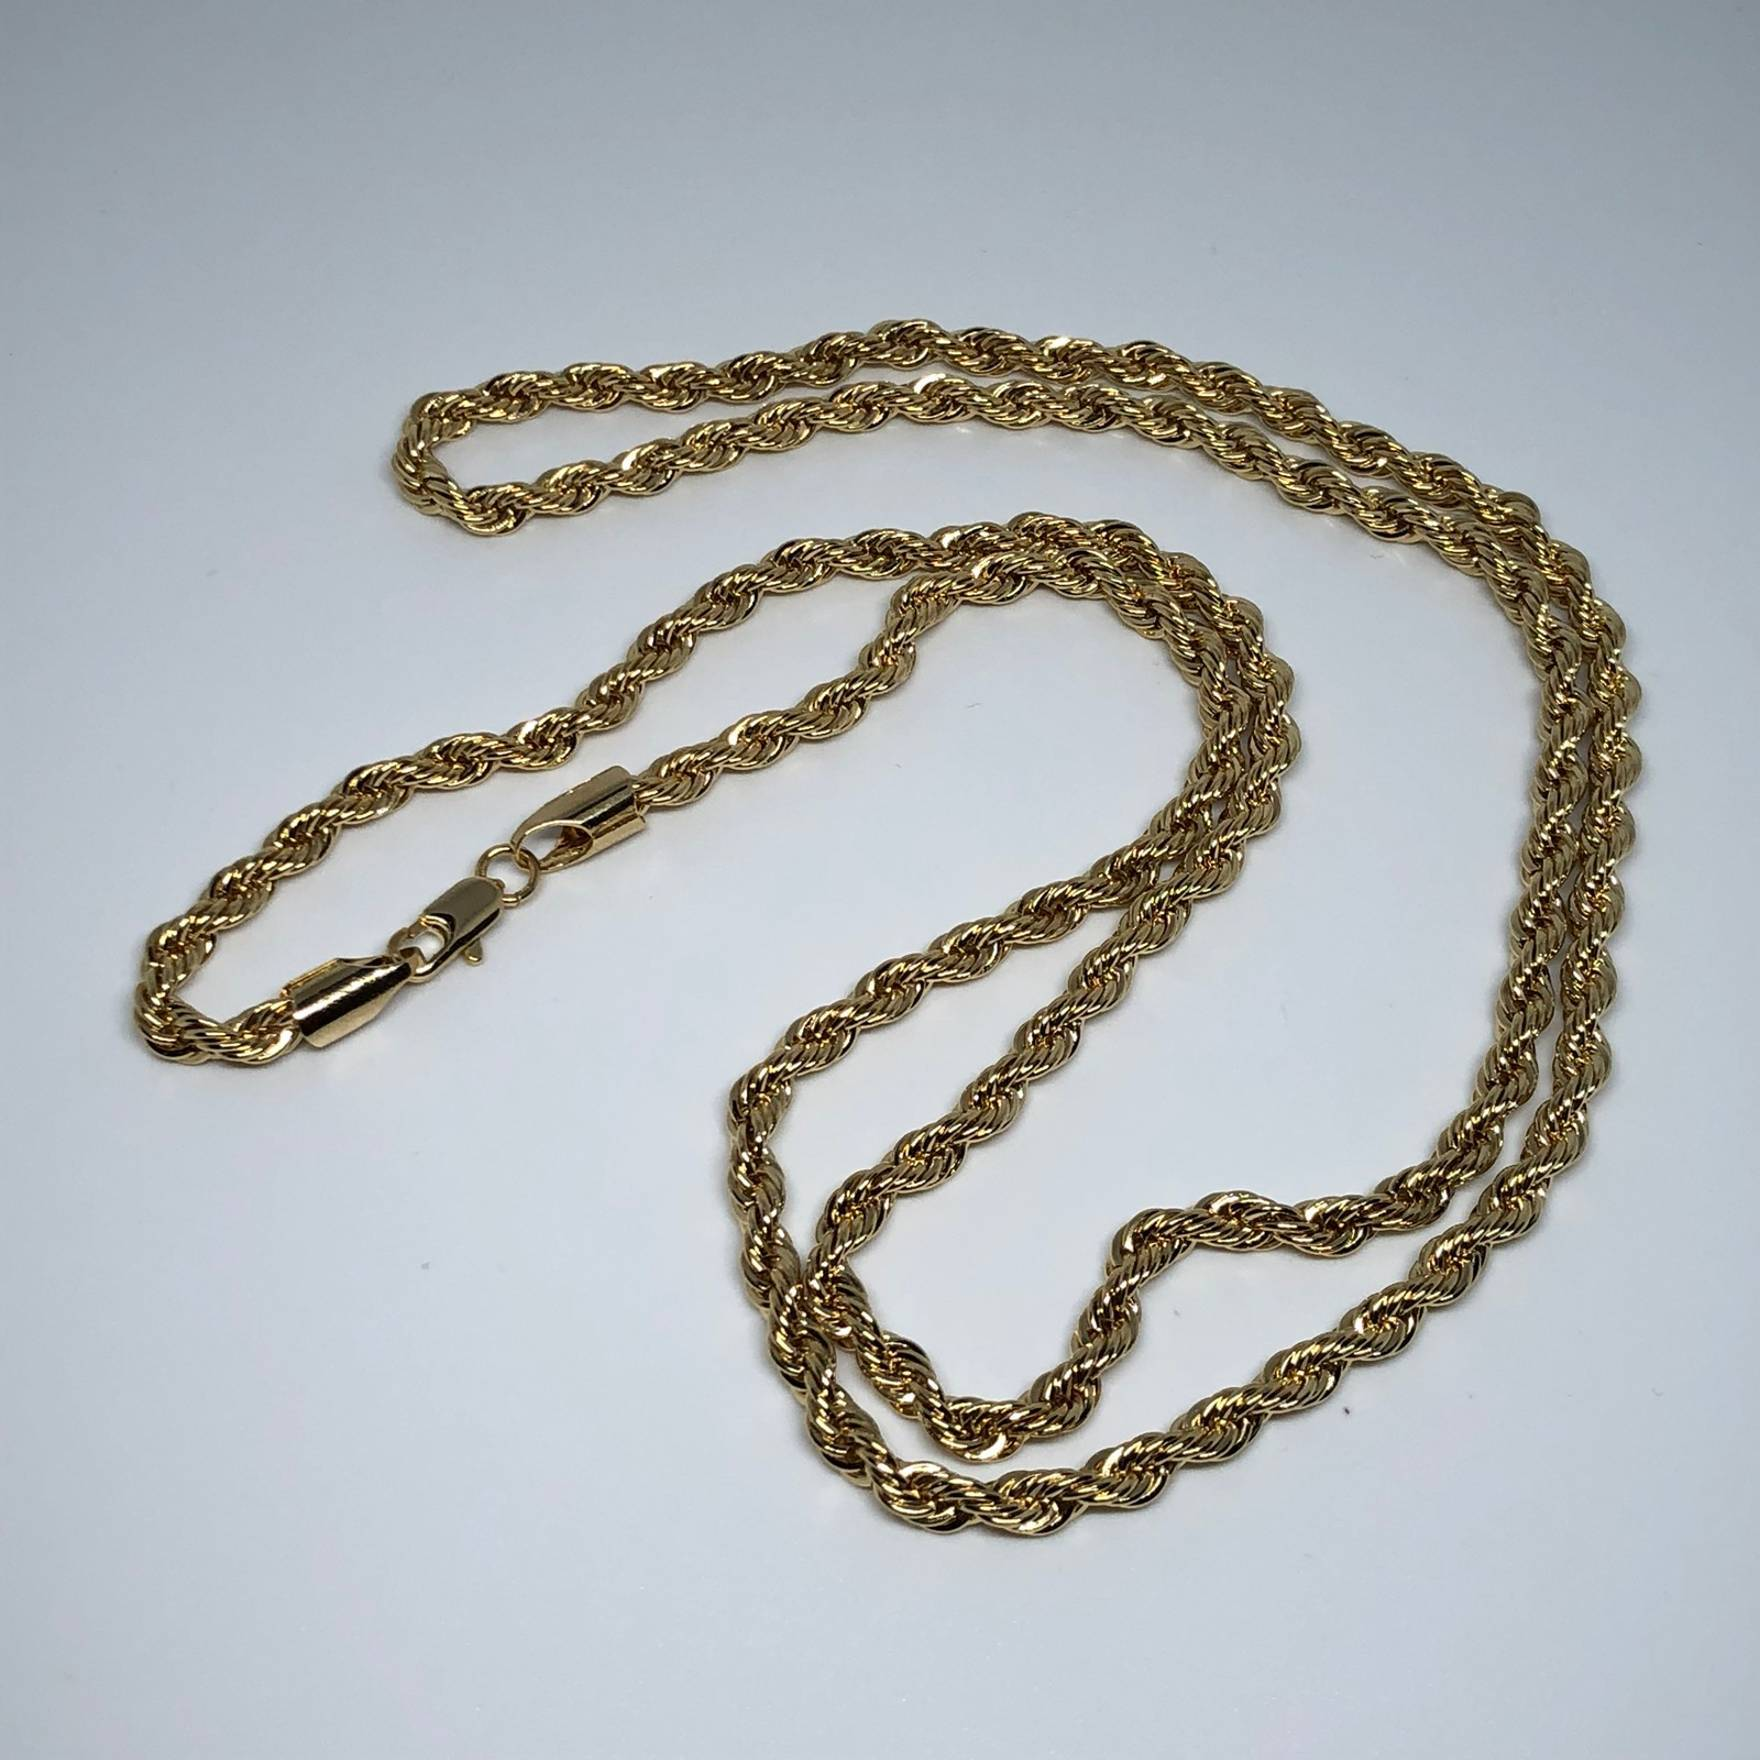 "14k Gold Plated Rope Chain 24"" Inches - TheJewelryGeek"